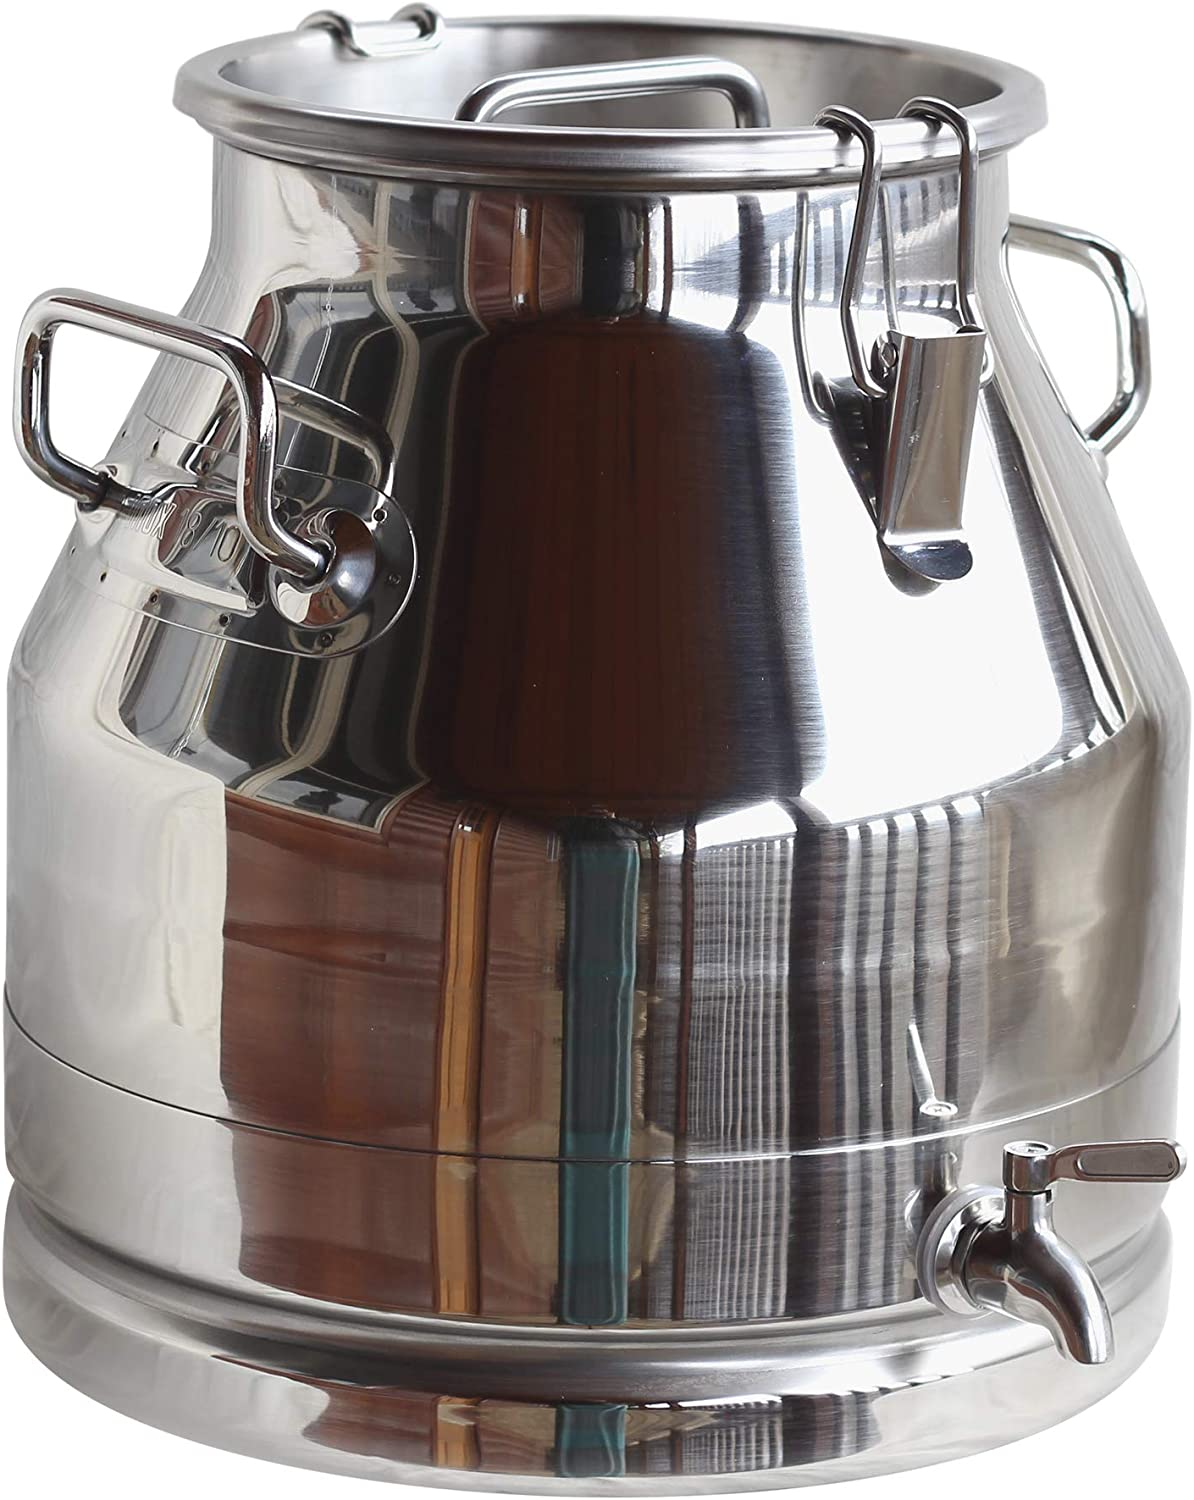 Stainless Steel Milk Transport Cans with Strong, Sealed Lid and Spigot Option (5 Gallon, with Spigot))